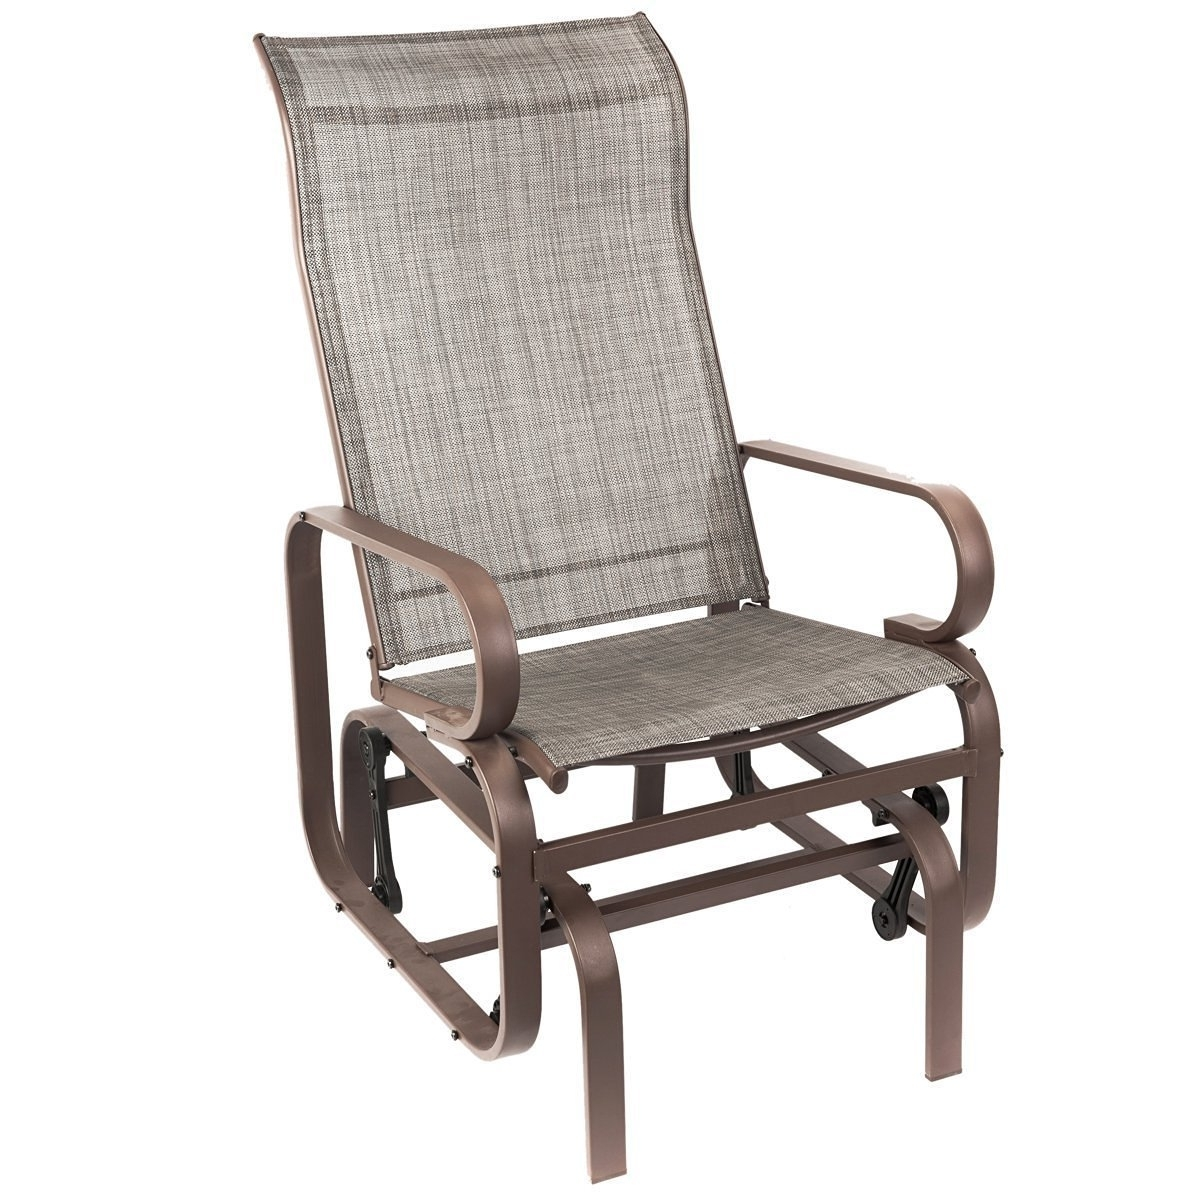 Naturefun Outdoor Patio Rocker Chair, Balcony Glider Rocking Lounge Within Well Known Patio Rocking Chairs With Covers (Gallery 2 of 20)